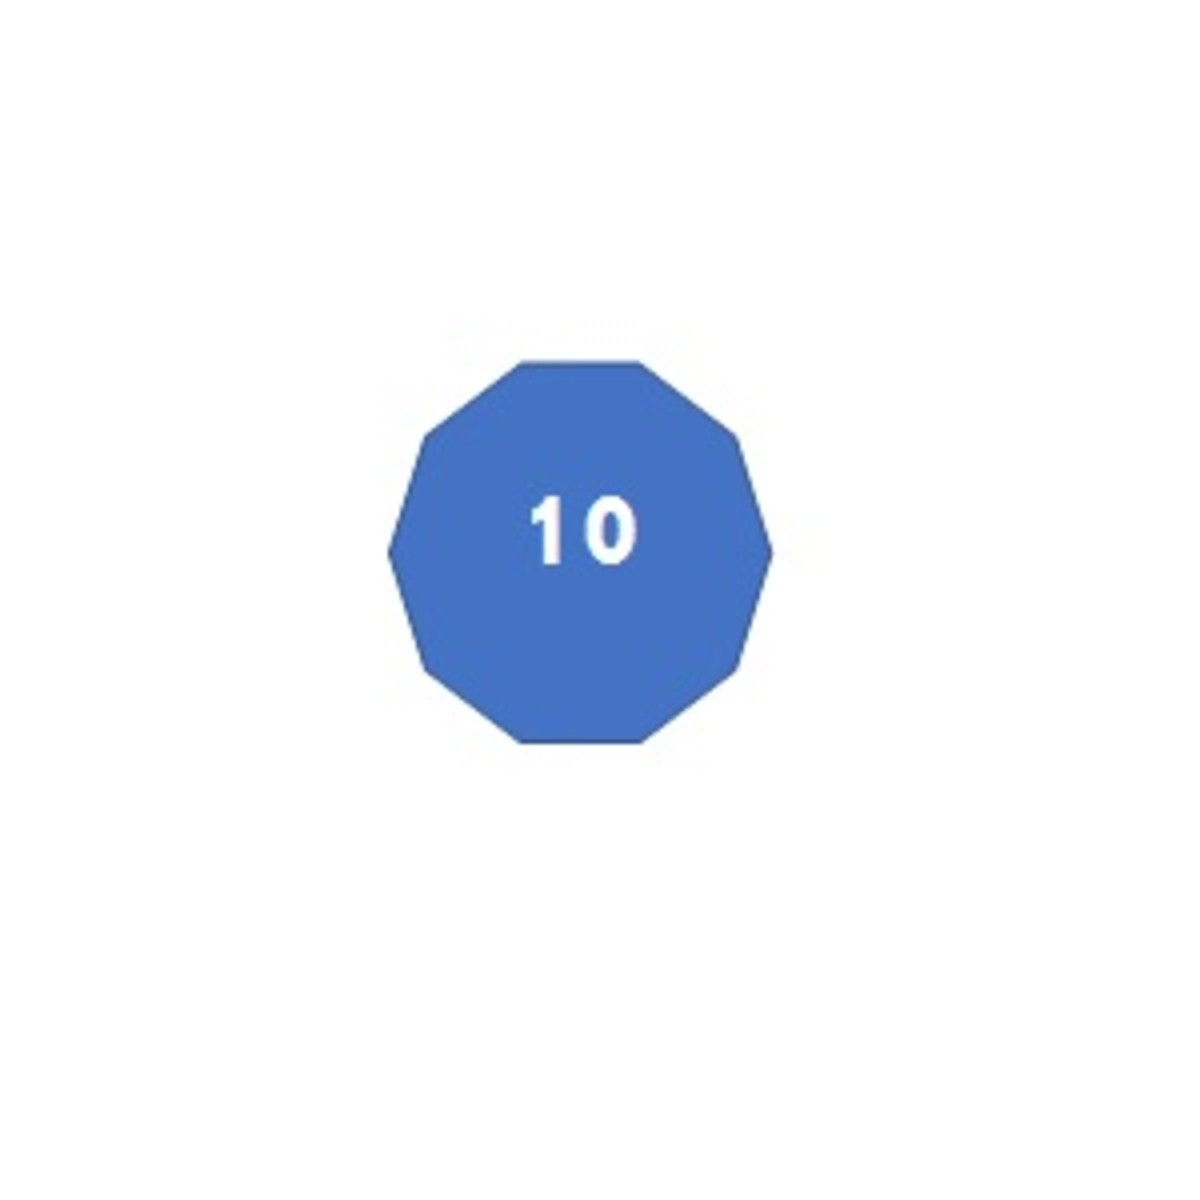 A decagon has 10 sides.